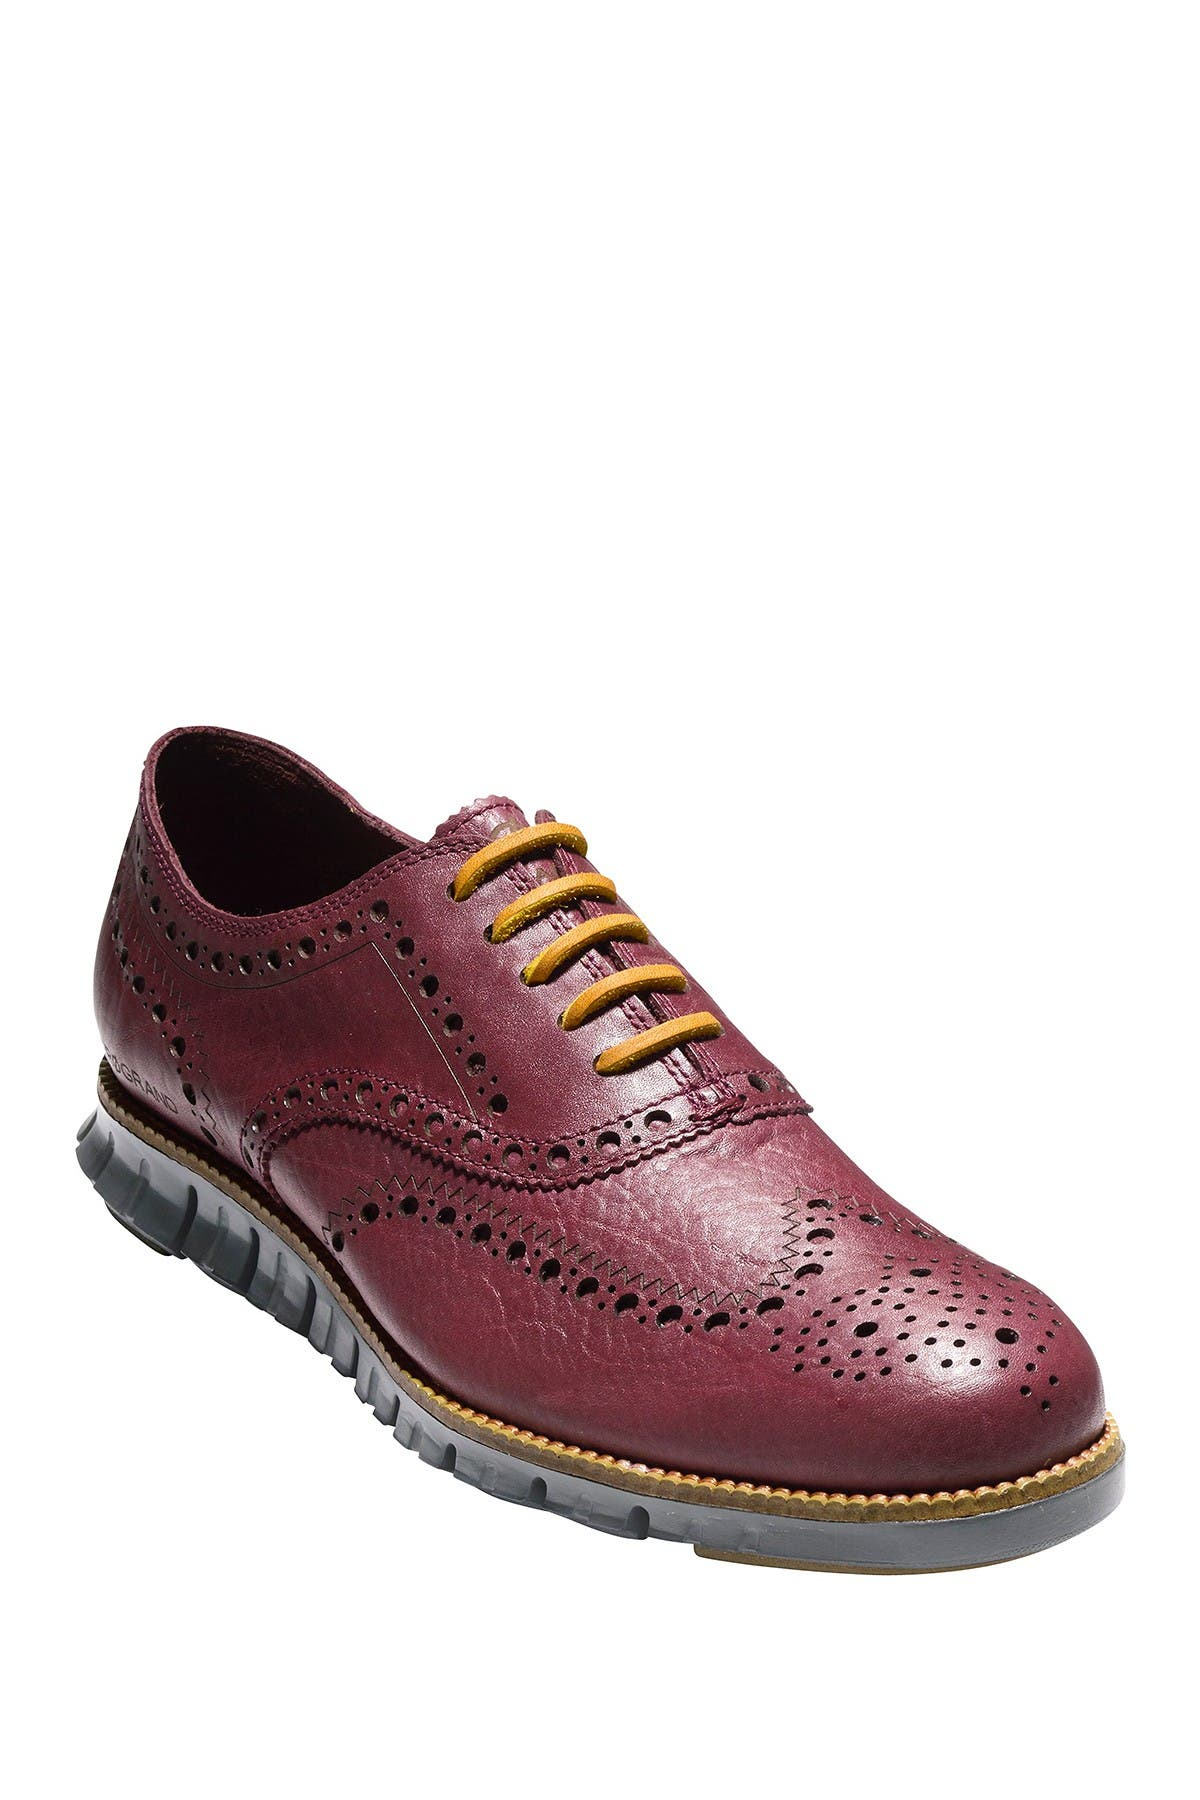 Image of Cole Haan ZeroGrand Wingtip Oxford Sneaker